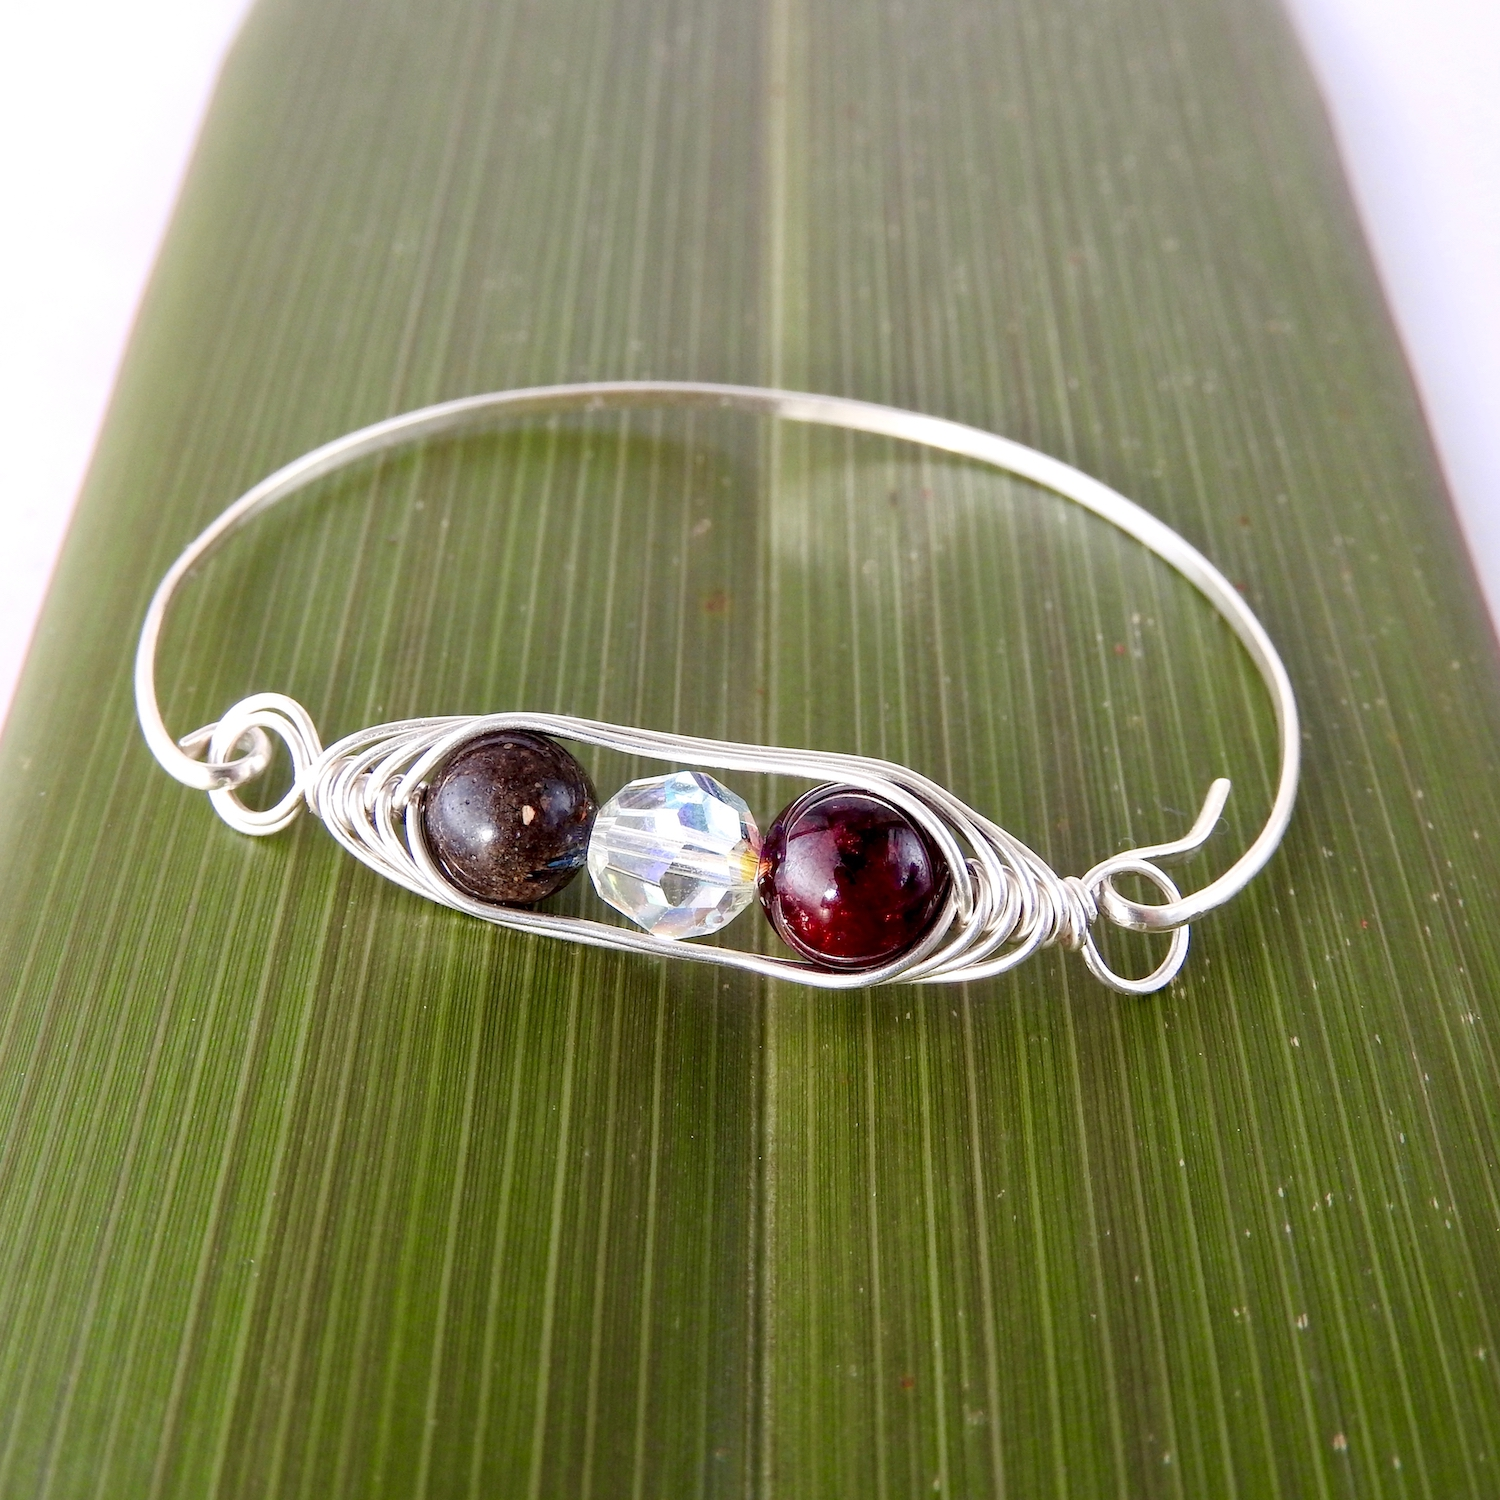 father, mother, child genuine birthstone handmade sustainable sterling silver bangle